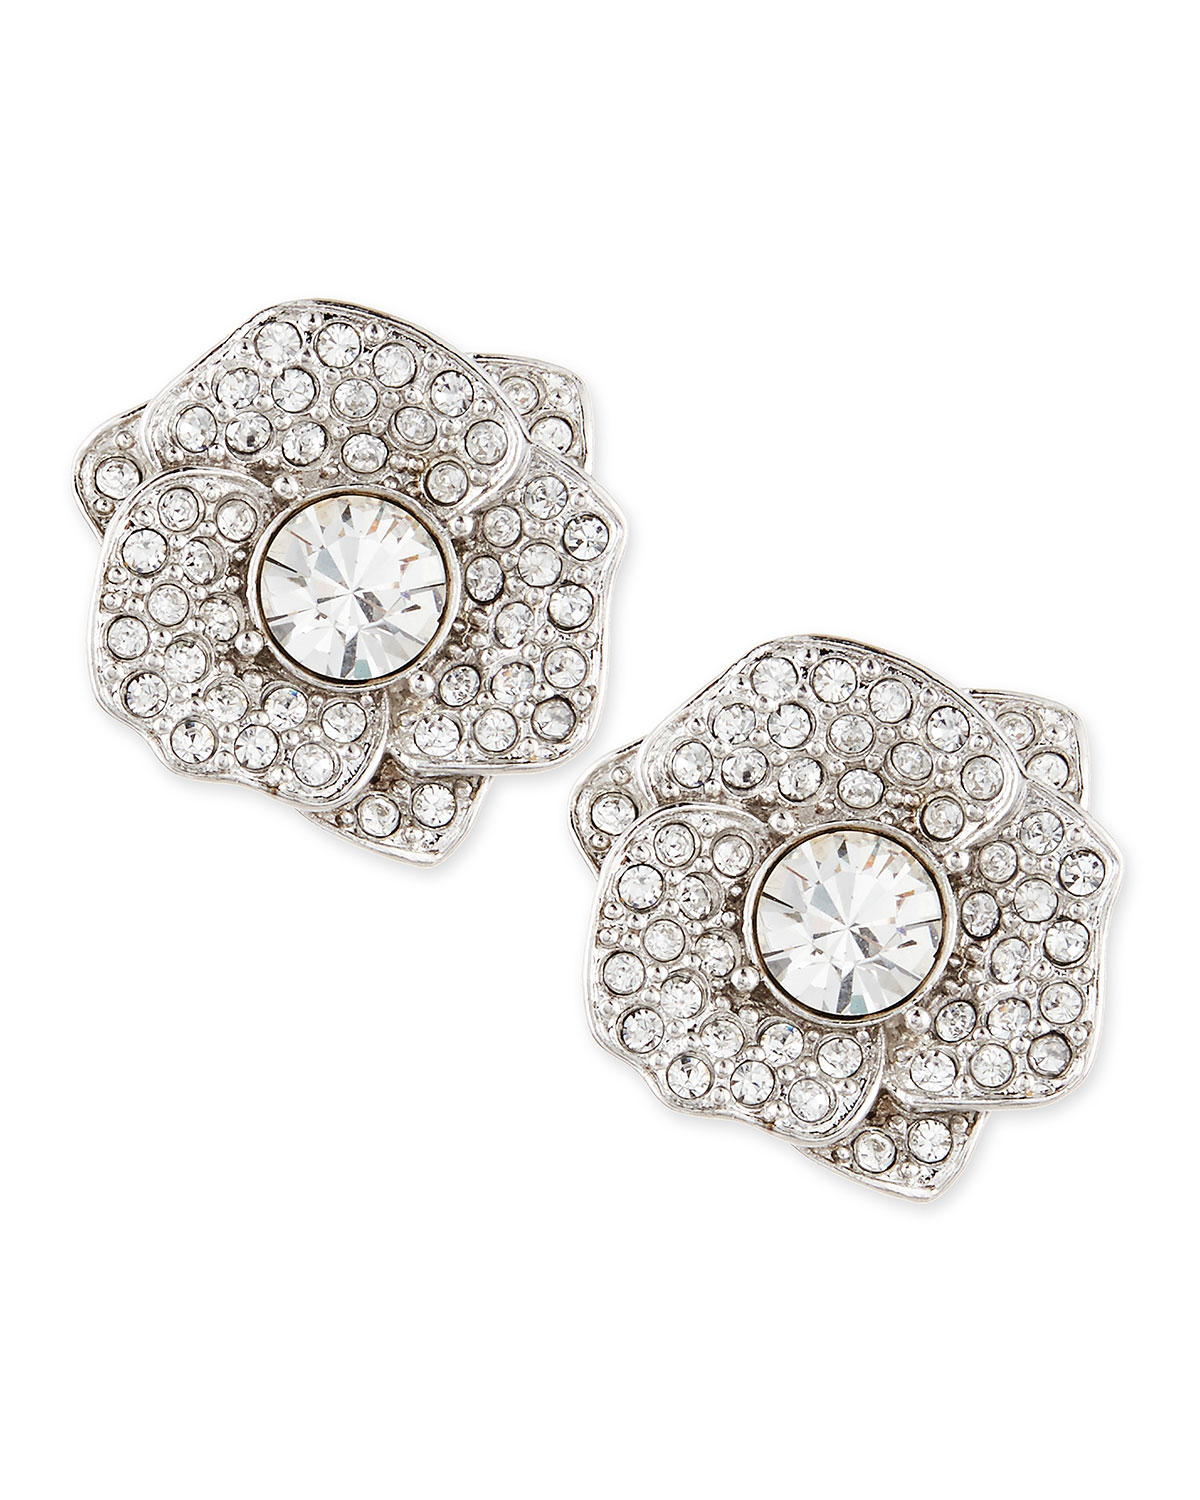 rose garden pave crystal stud earrings   kate spade new york   Silver